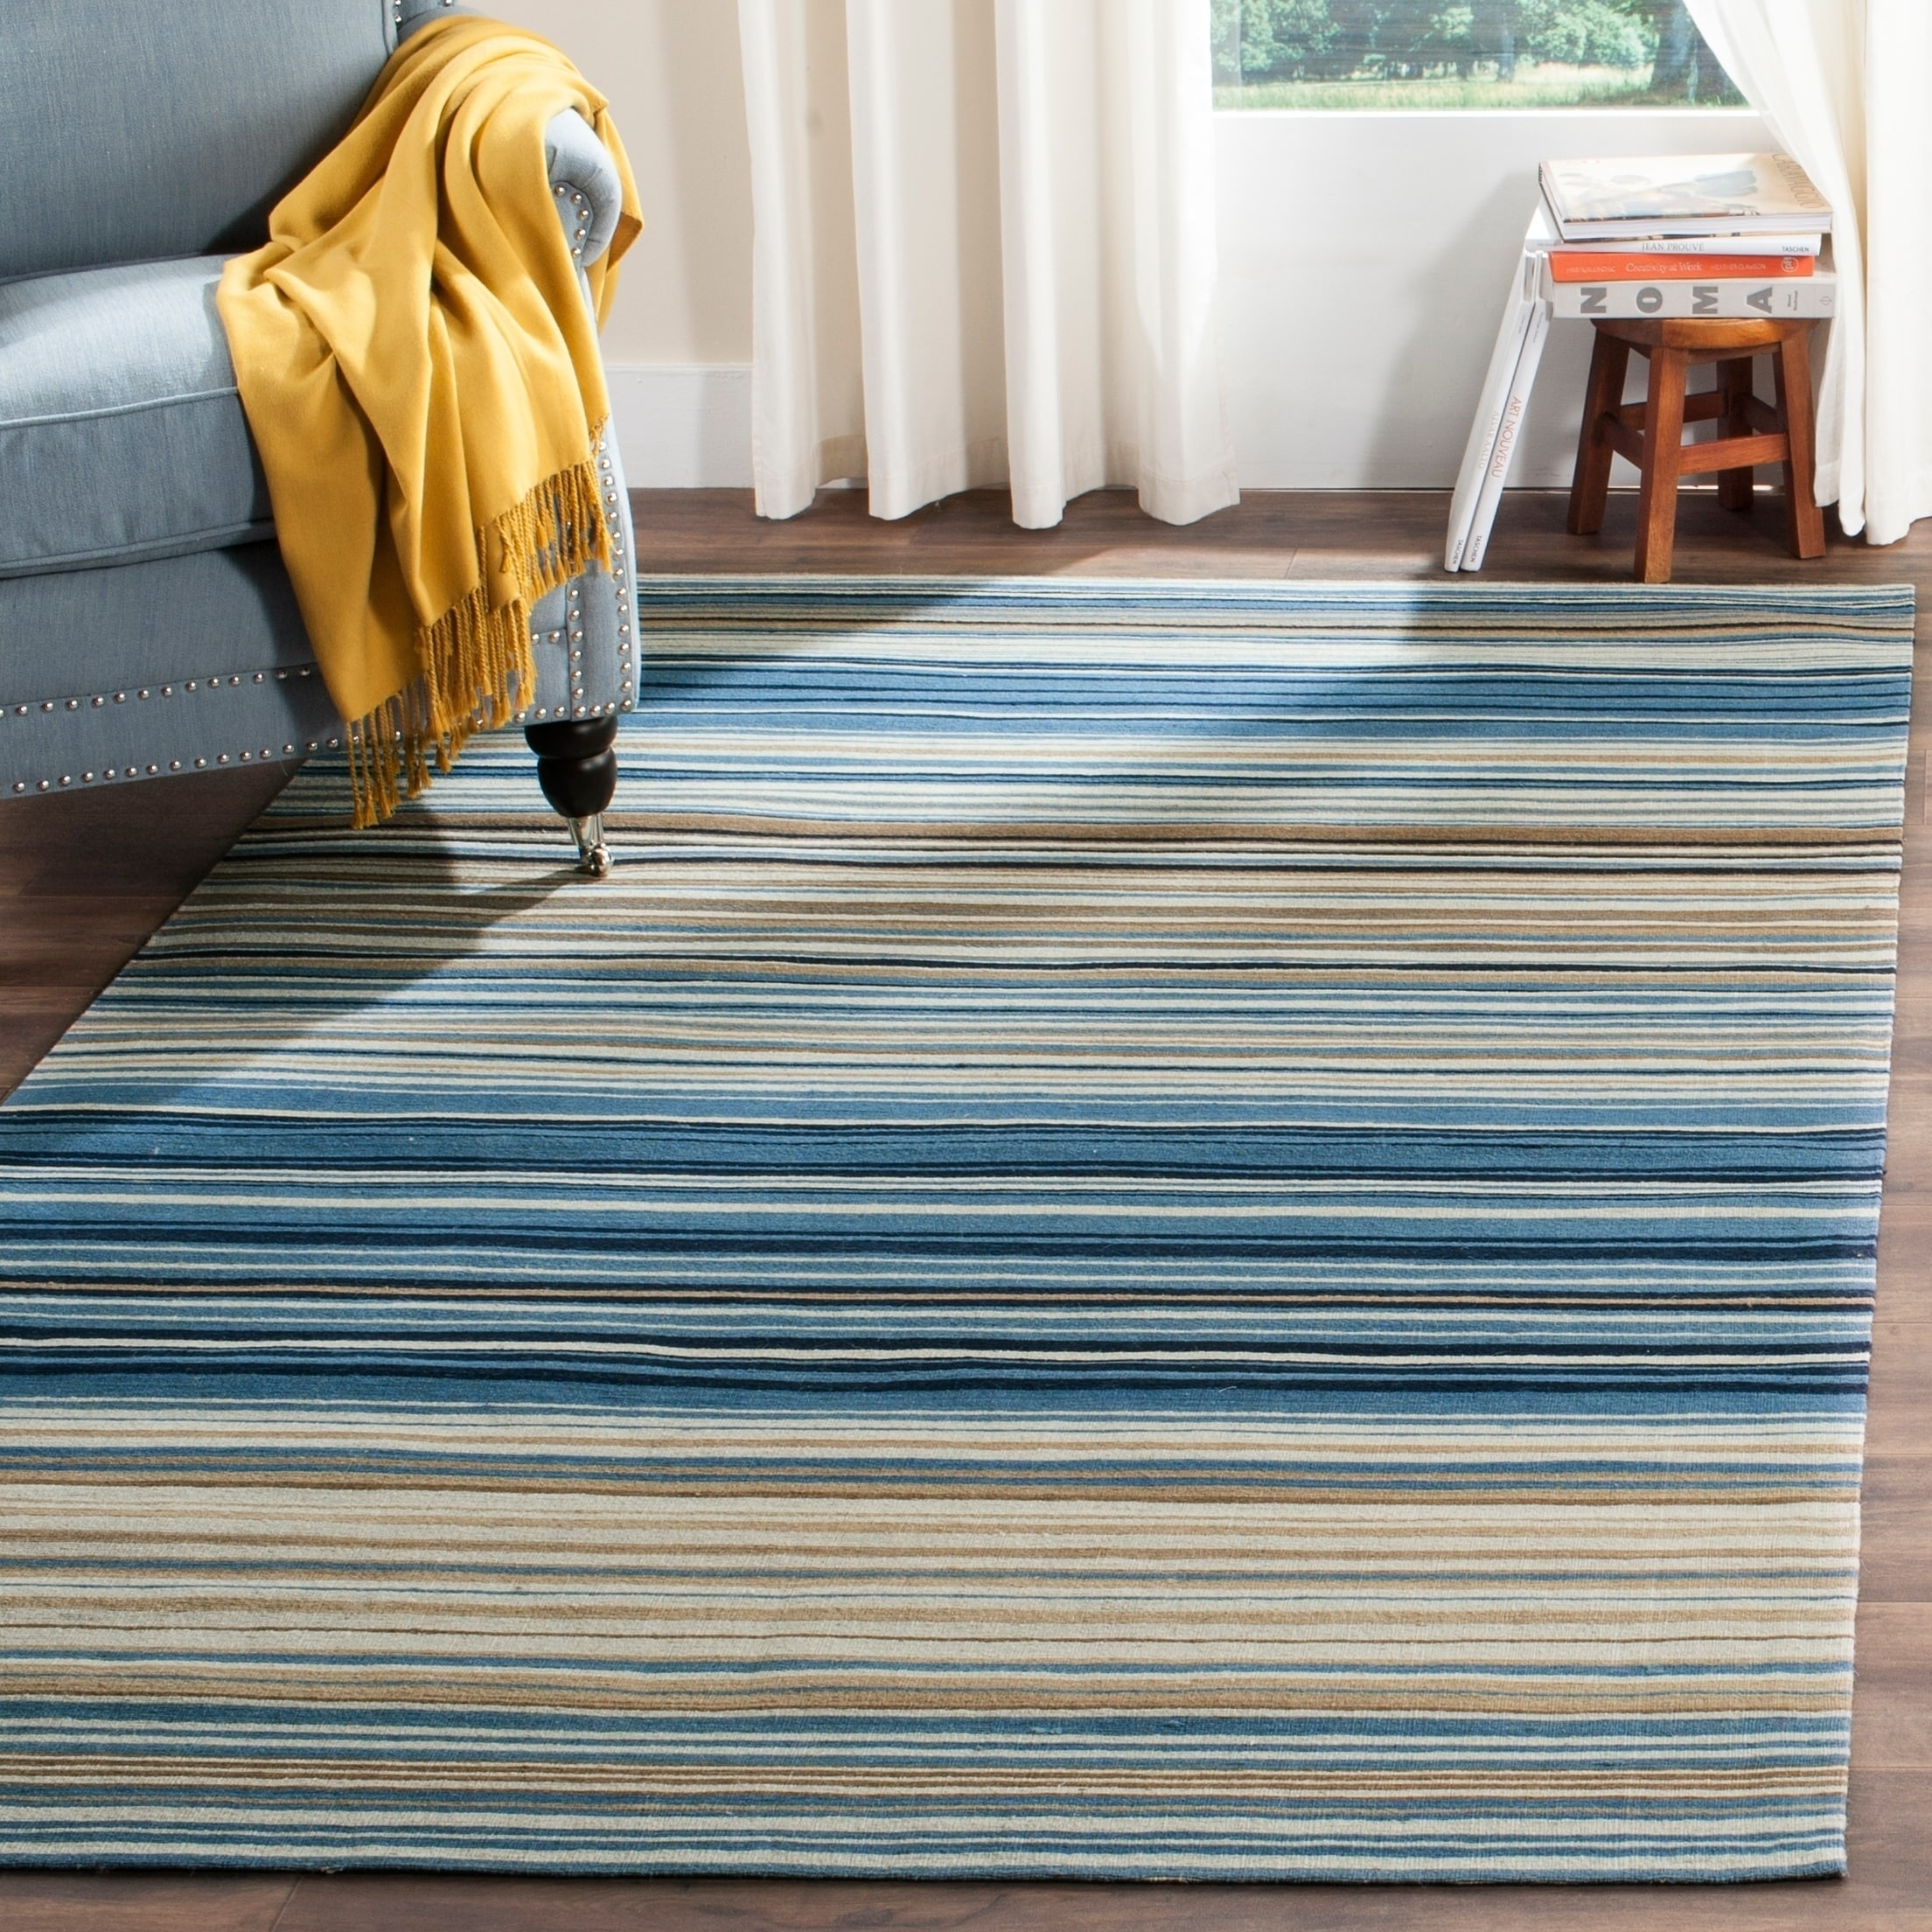 Safavieh Hand-woven Marbella Cream/ Blue/ Black Wool Rug ...